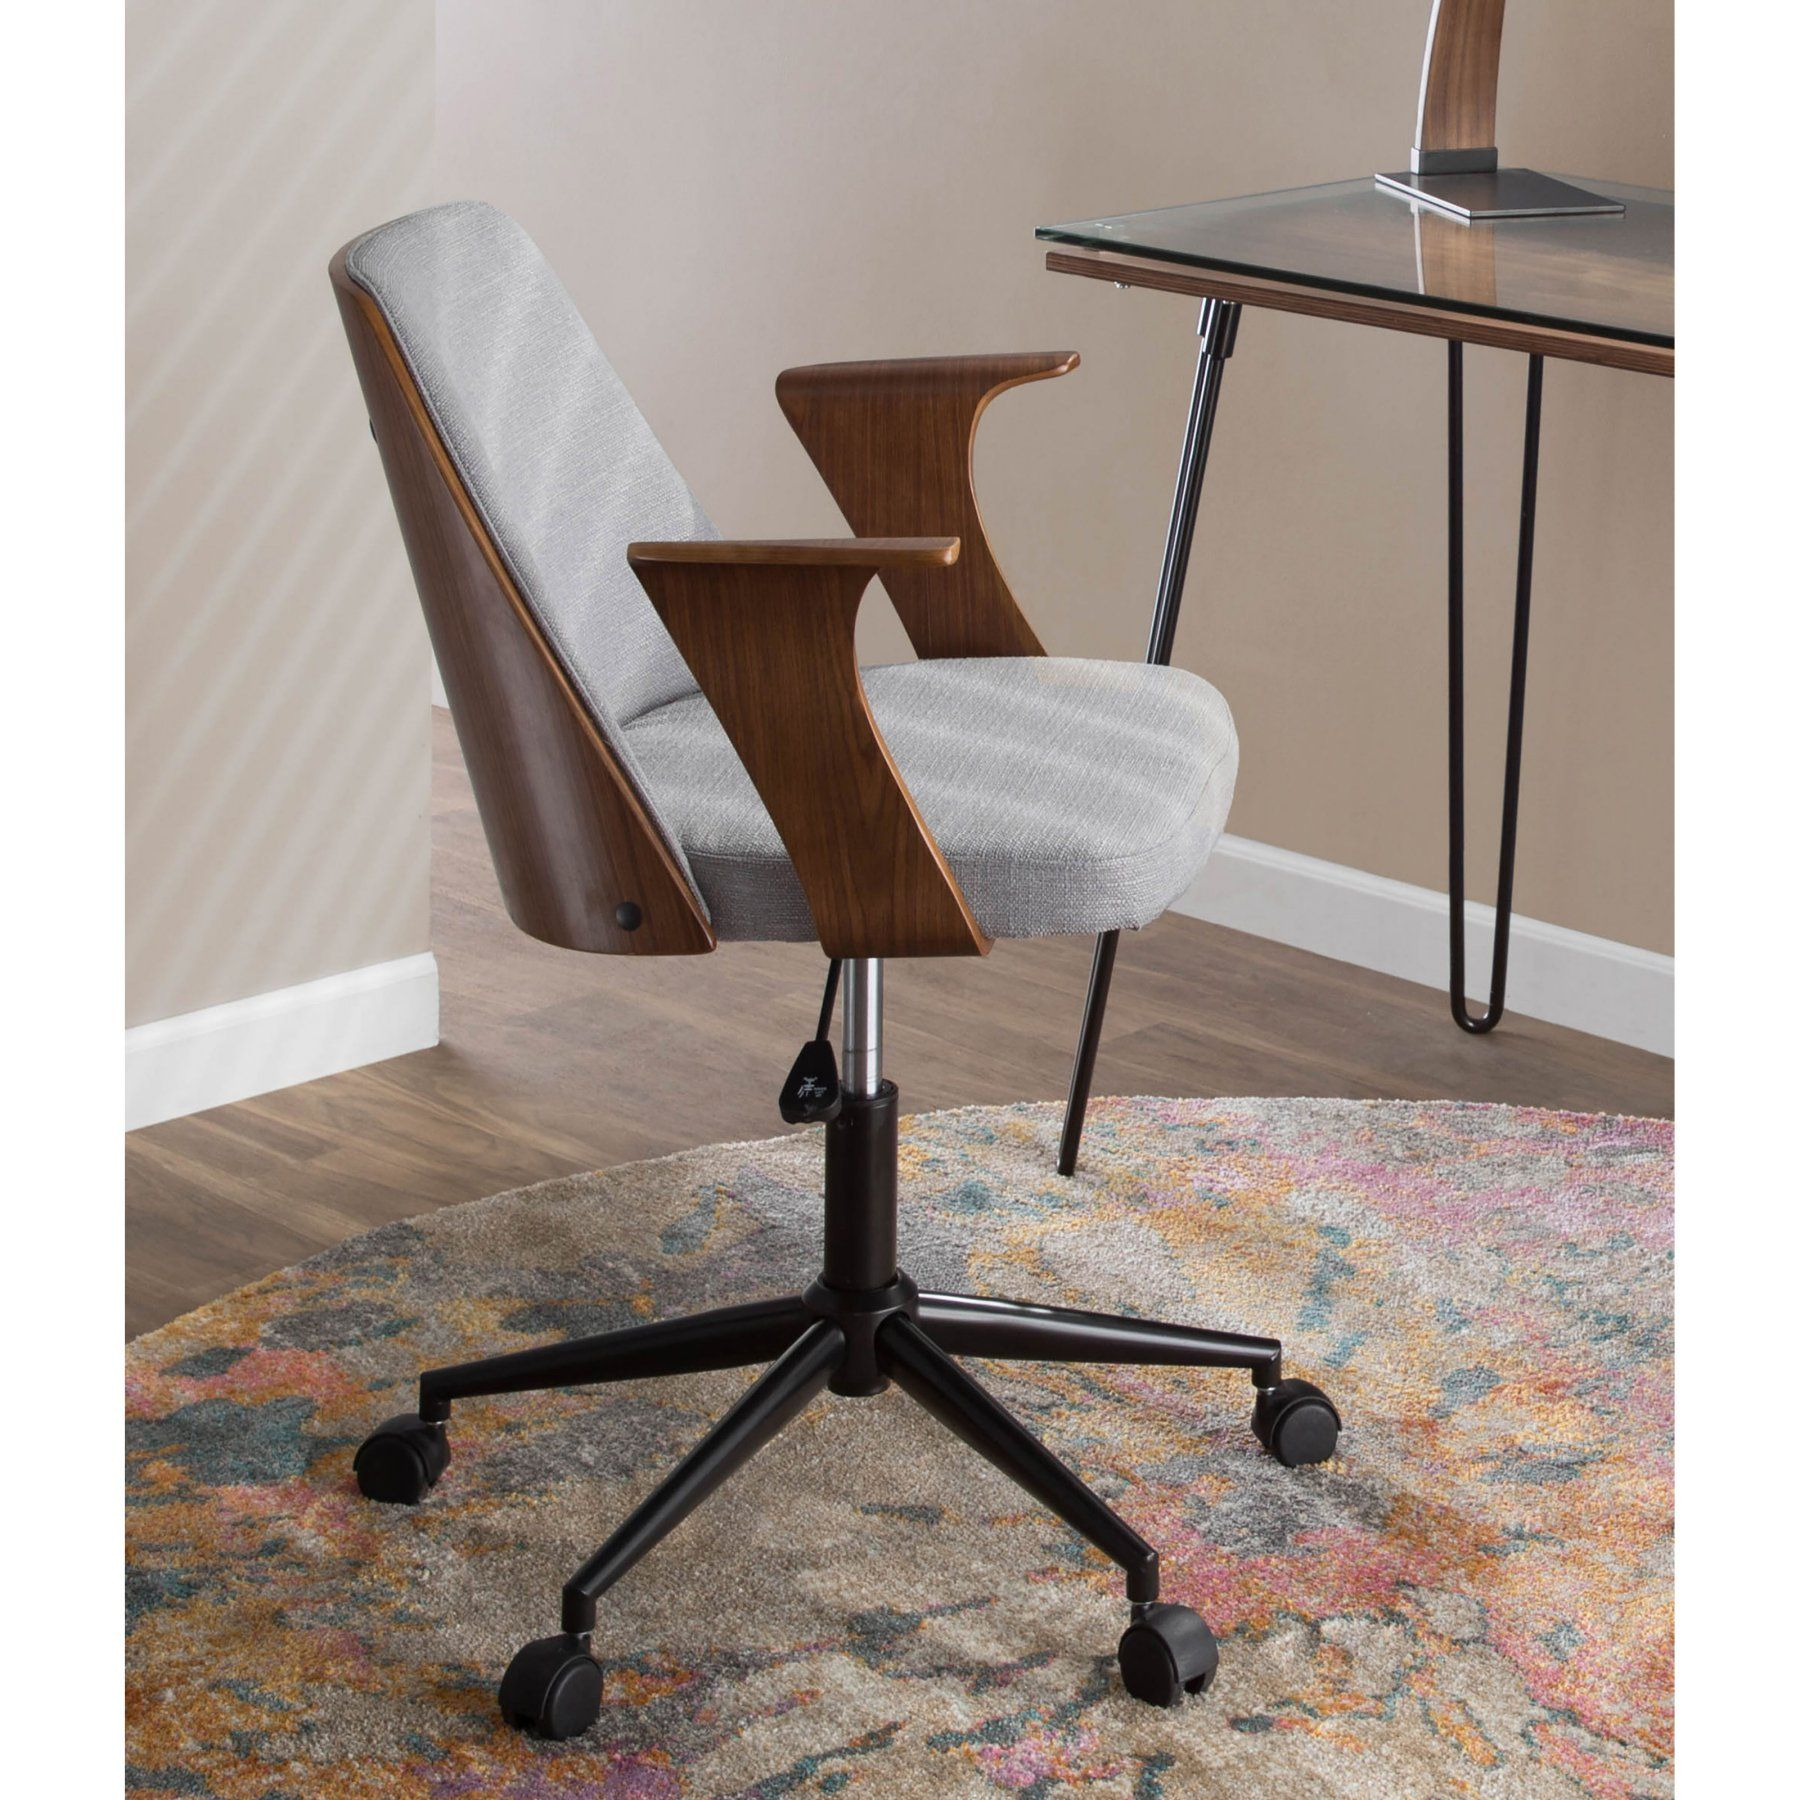 Lumisource Verdana Adjustable Fabric Office Chair  Oc Vrdna Wl+Gy